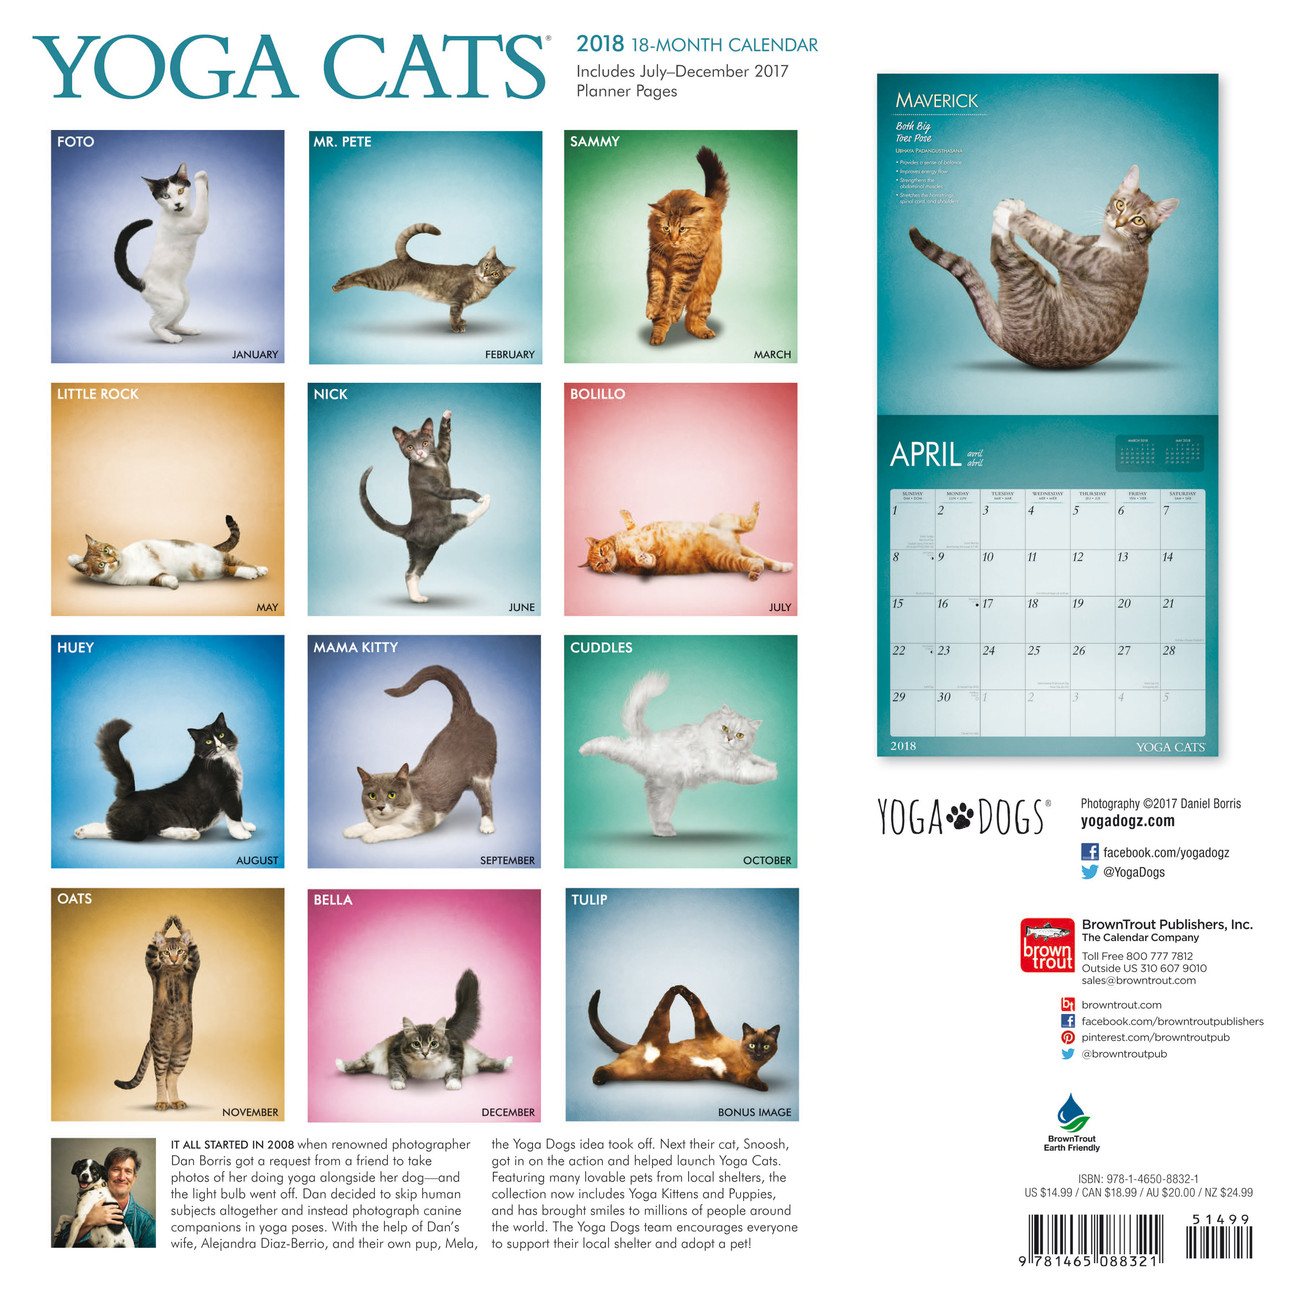 Yoga Cats And Dogs Calendar